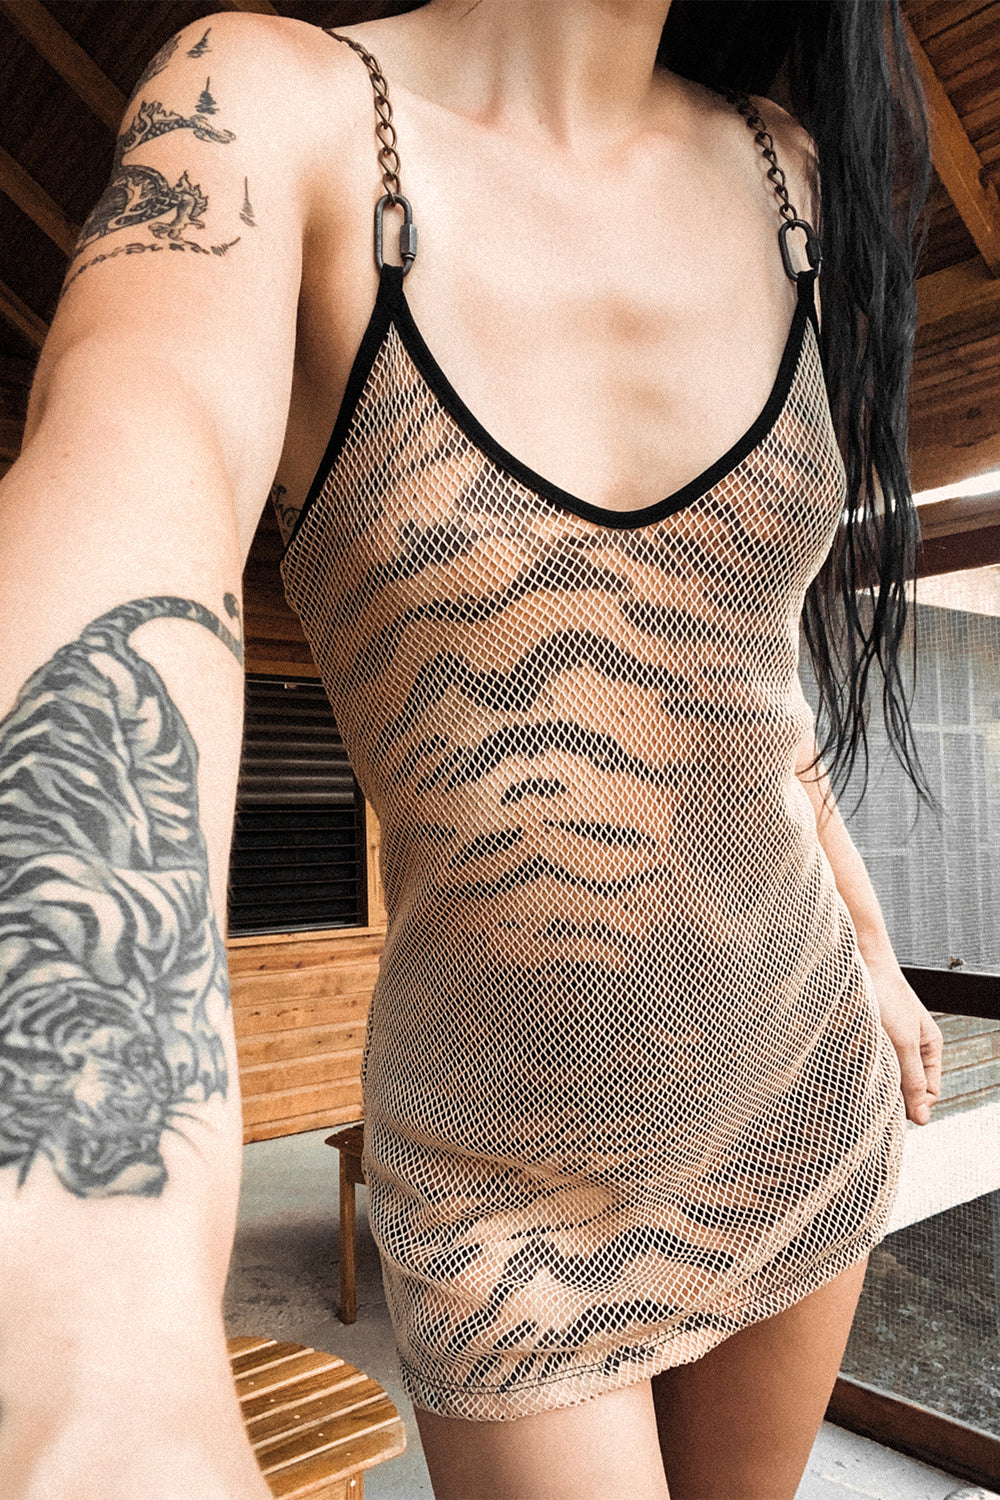 PRE-ORDER The Heavy Metal Chain Dress・Fishnet Tiger, Dresses, BACKBITE, BACKBITE